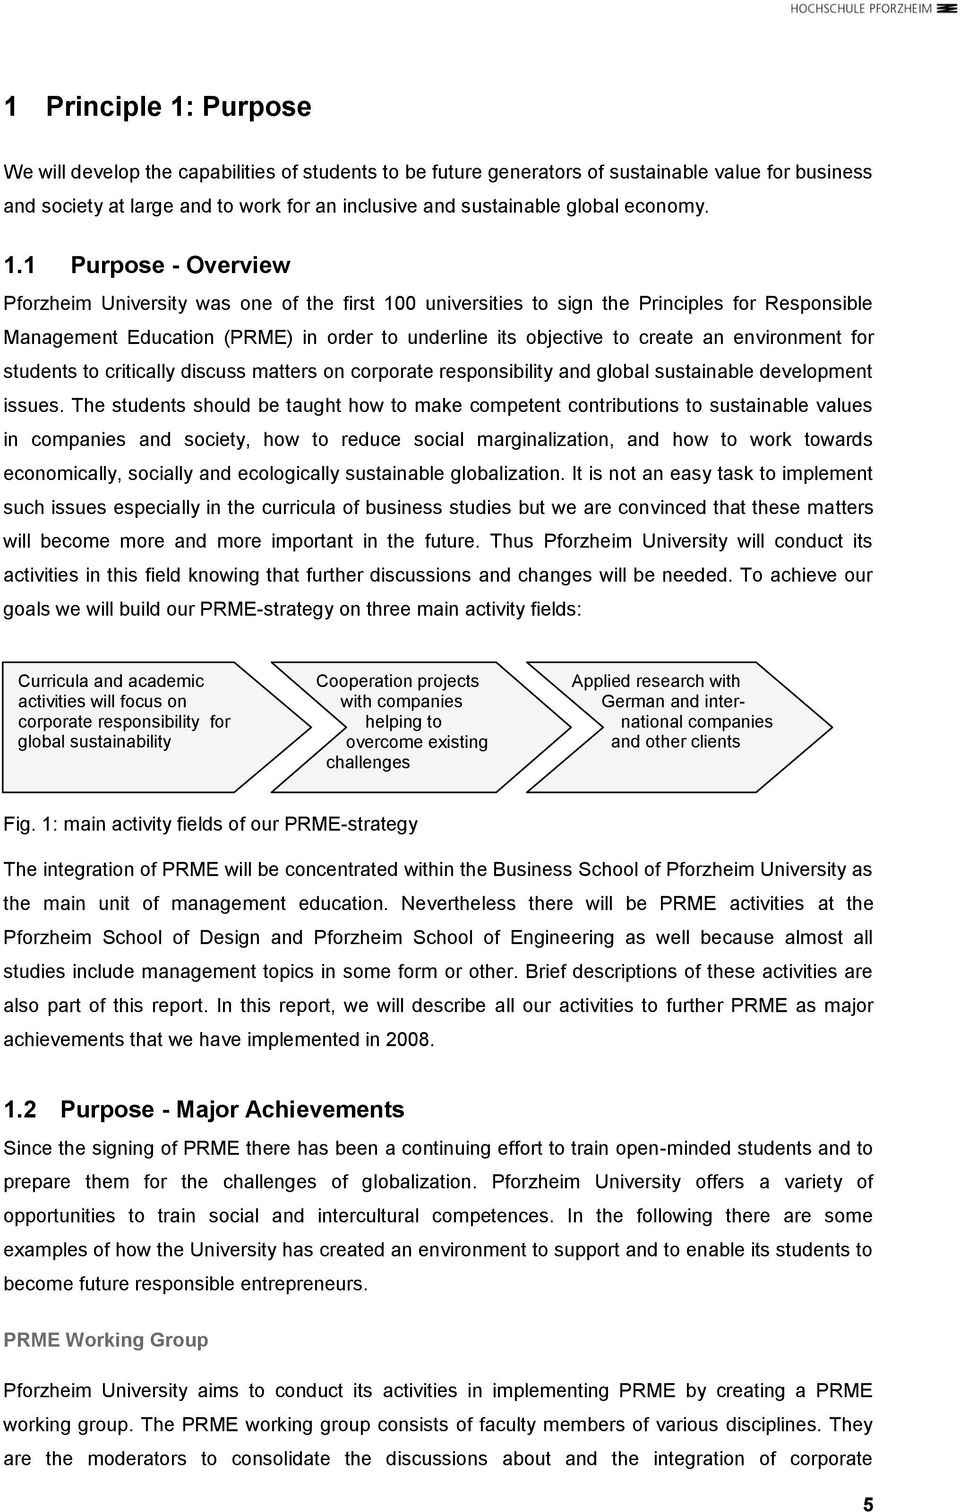 1 Purpose - Overview Pforzheim University was one of the first 100 universities to sign the Principles for Responsible Management Education (PRME) in order to underline its objective to create an